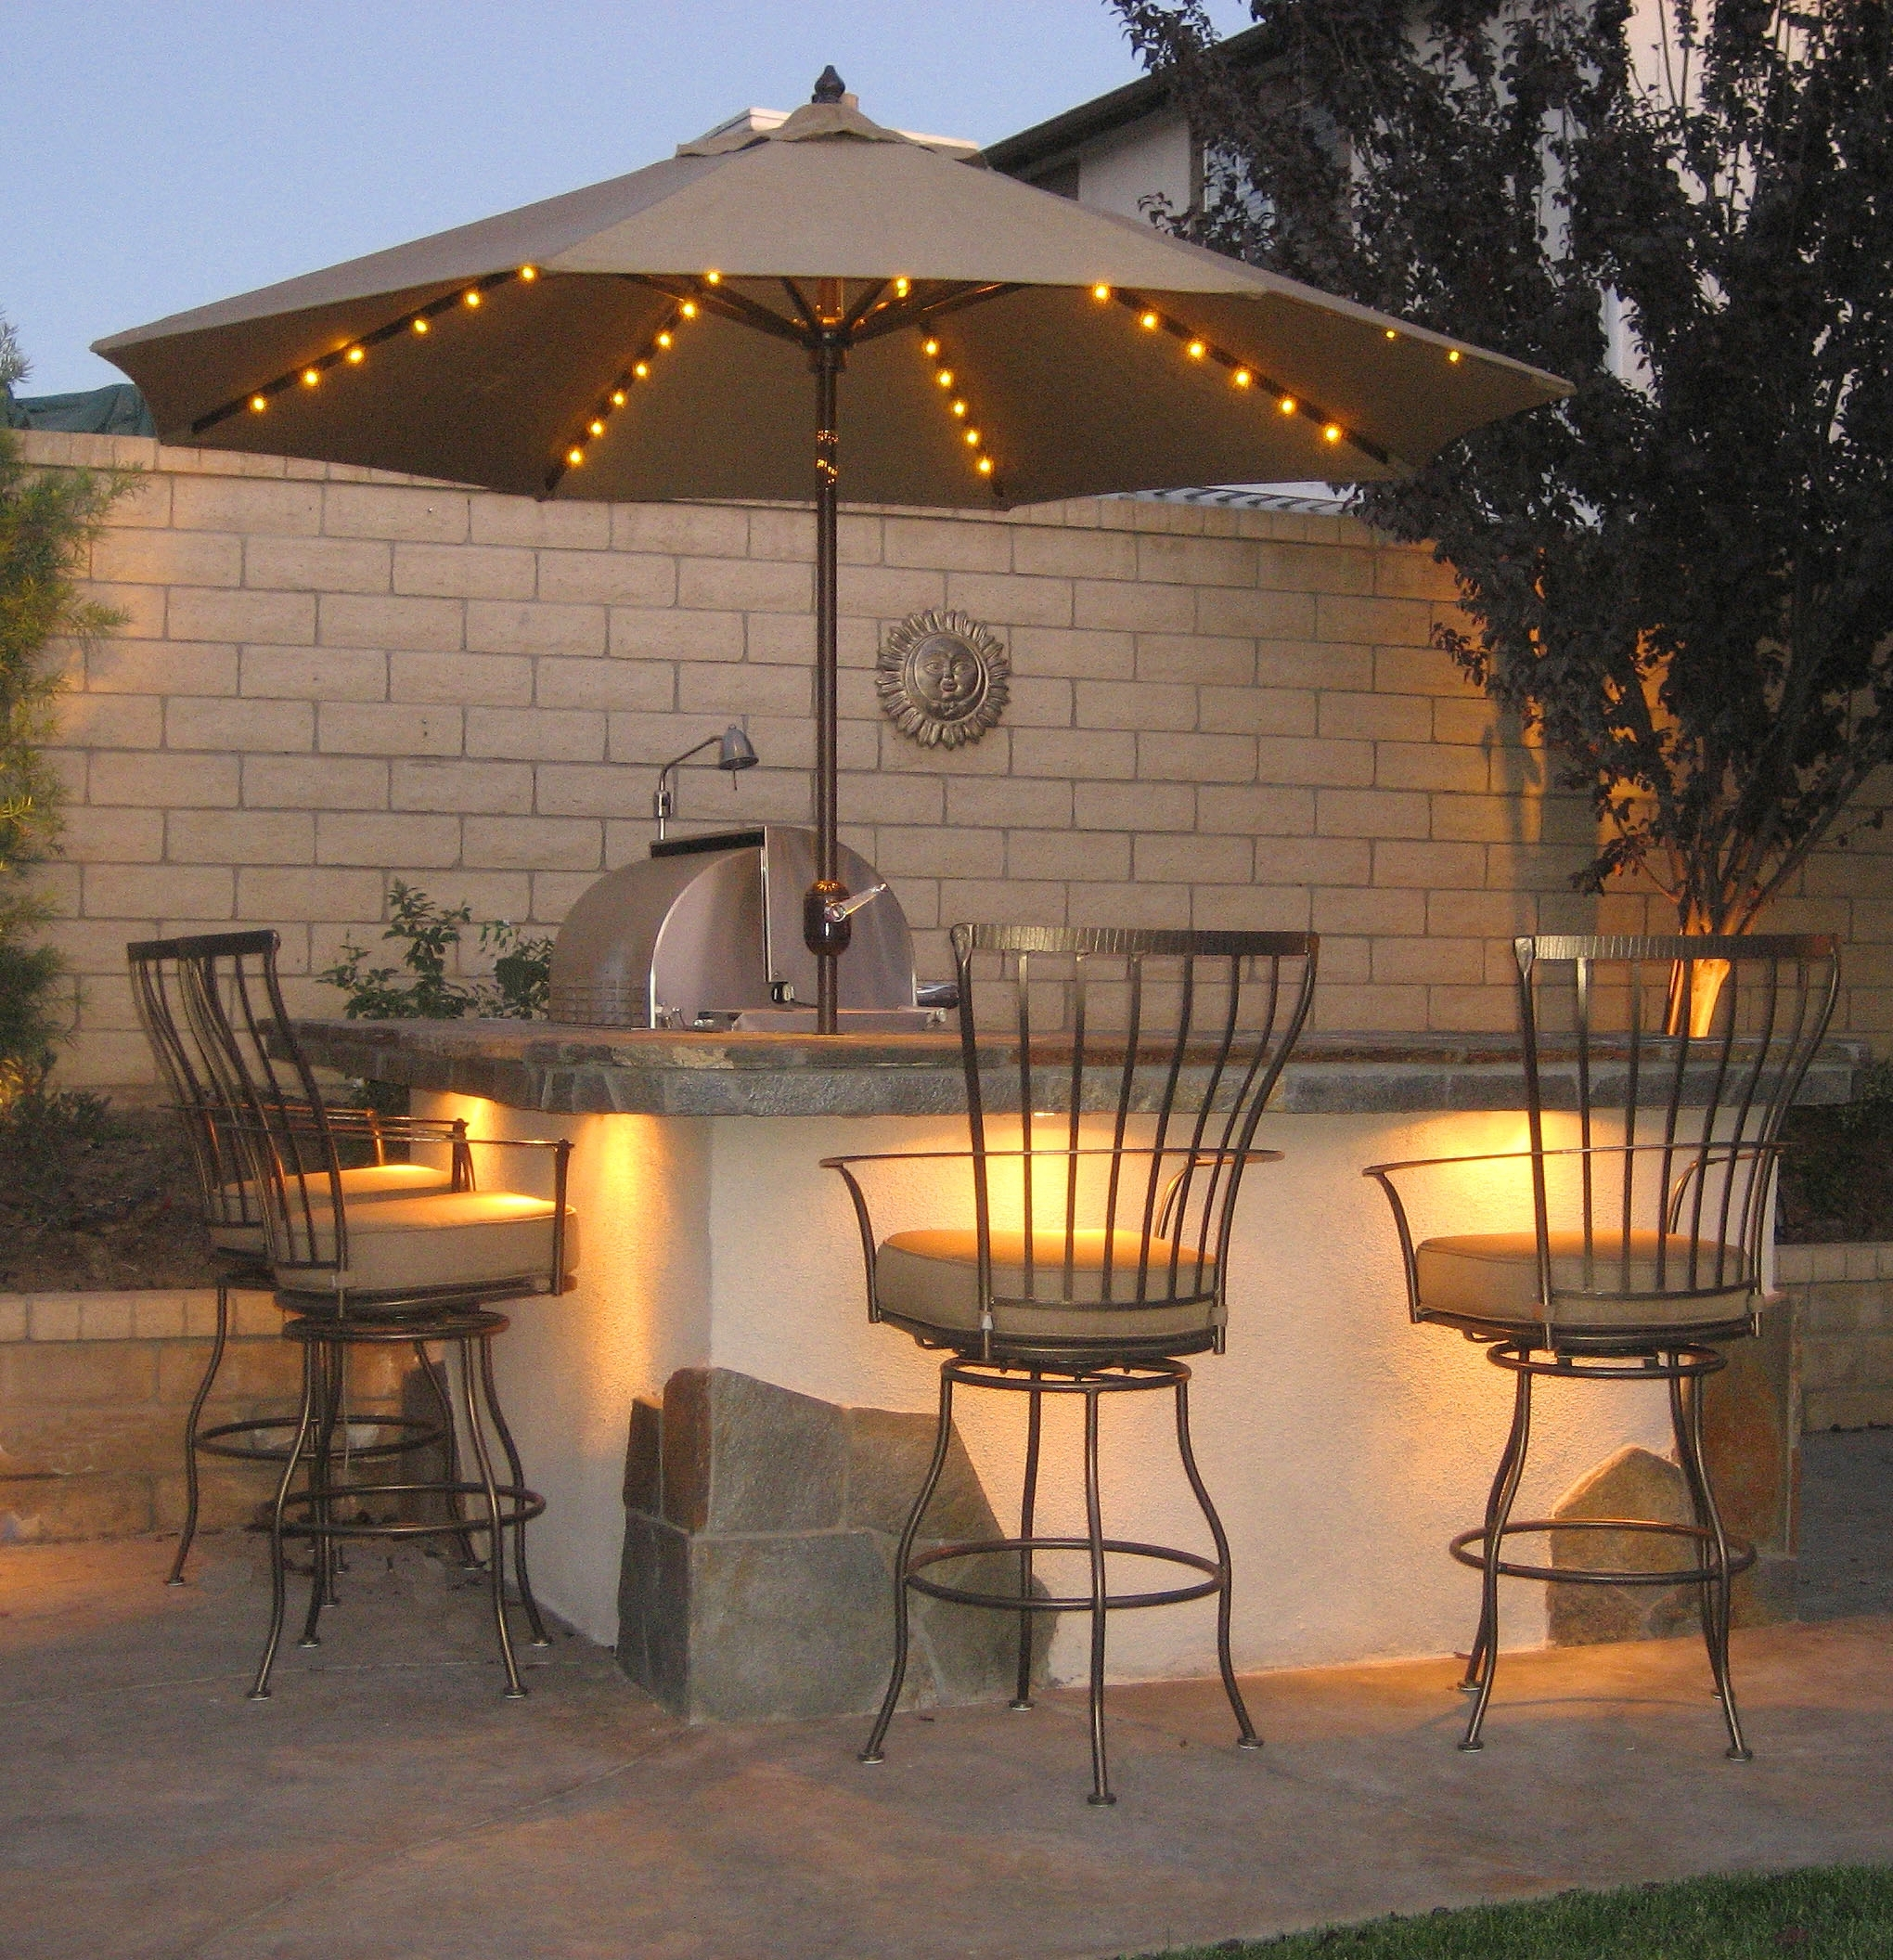 Lighted Patio Umbrellas — Mistikcamping Home Design : Different In Widely Used Solar Lights For Patio Umbrellas (View 8 of 20)